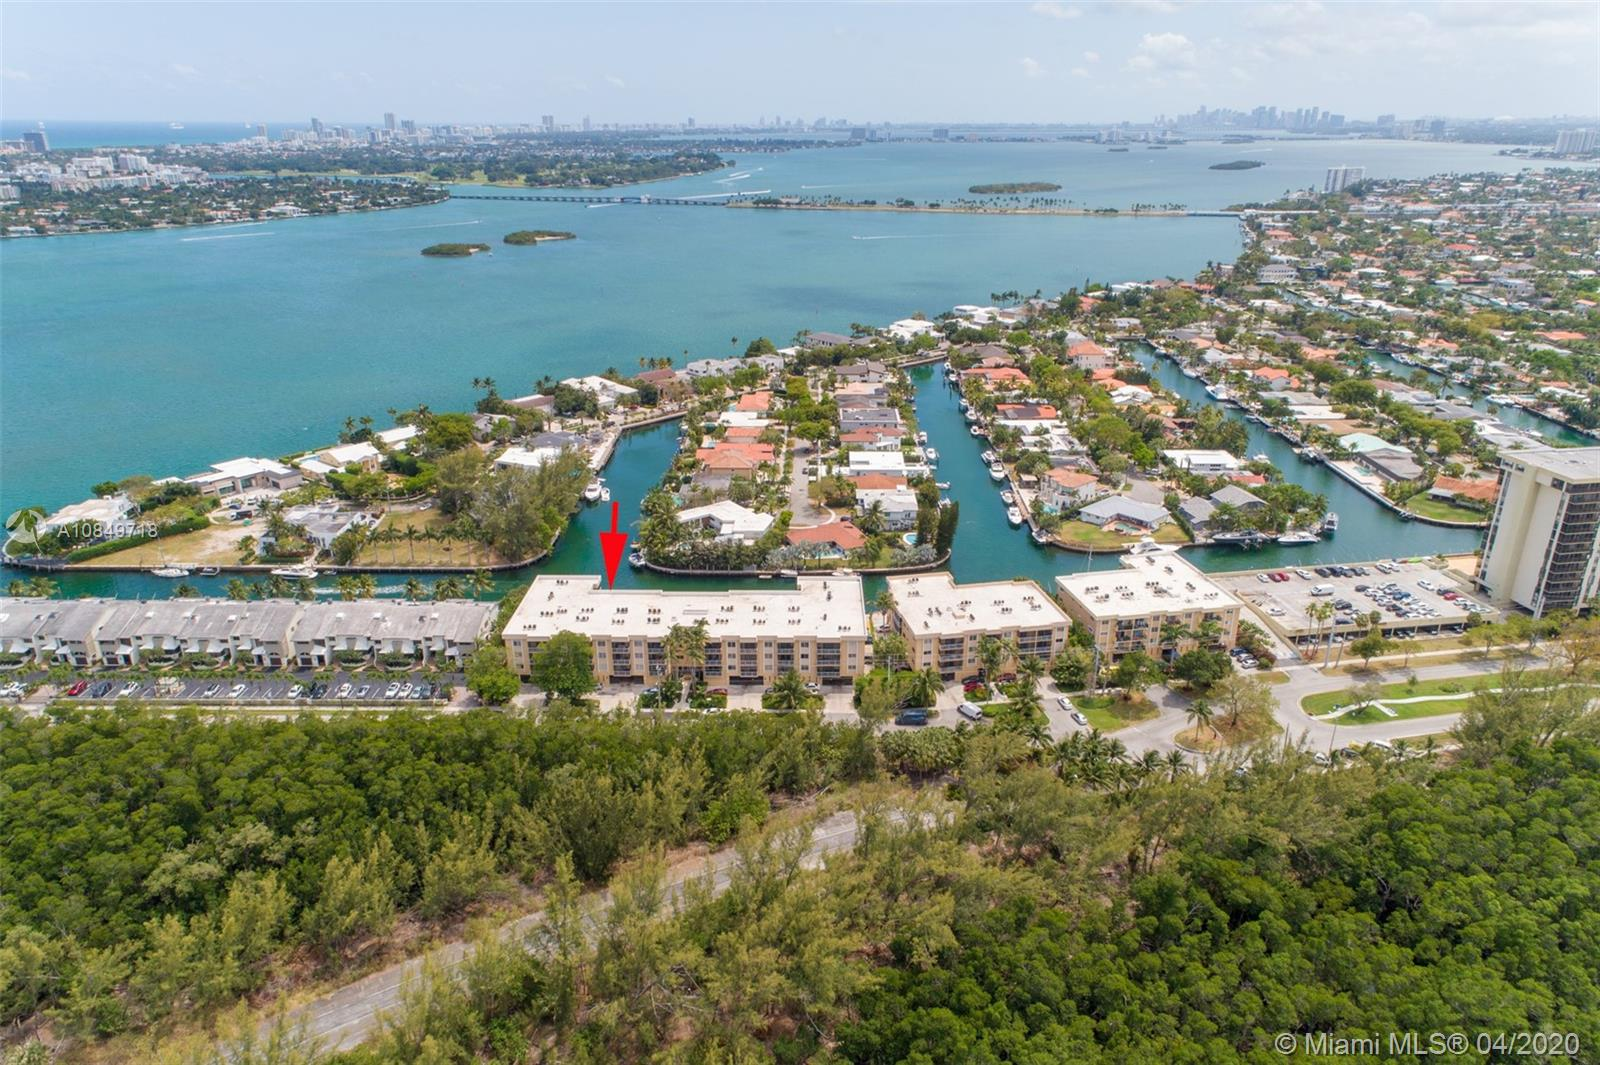 2640 NE 135th St # 214, North Miami, Florida 33181, 1 Bedroom Bedrooms, ,2 BathroomsBathrooms,Residential,For Sale,2640 NE 135th St # 214,A10849718